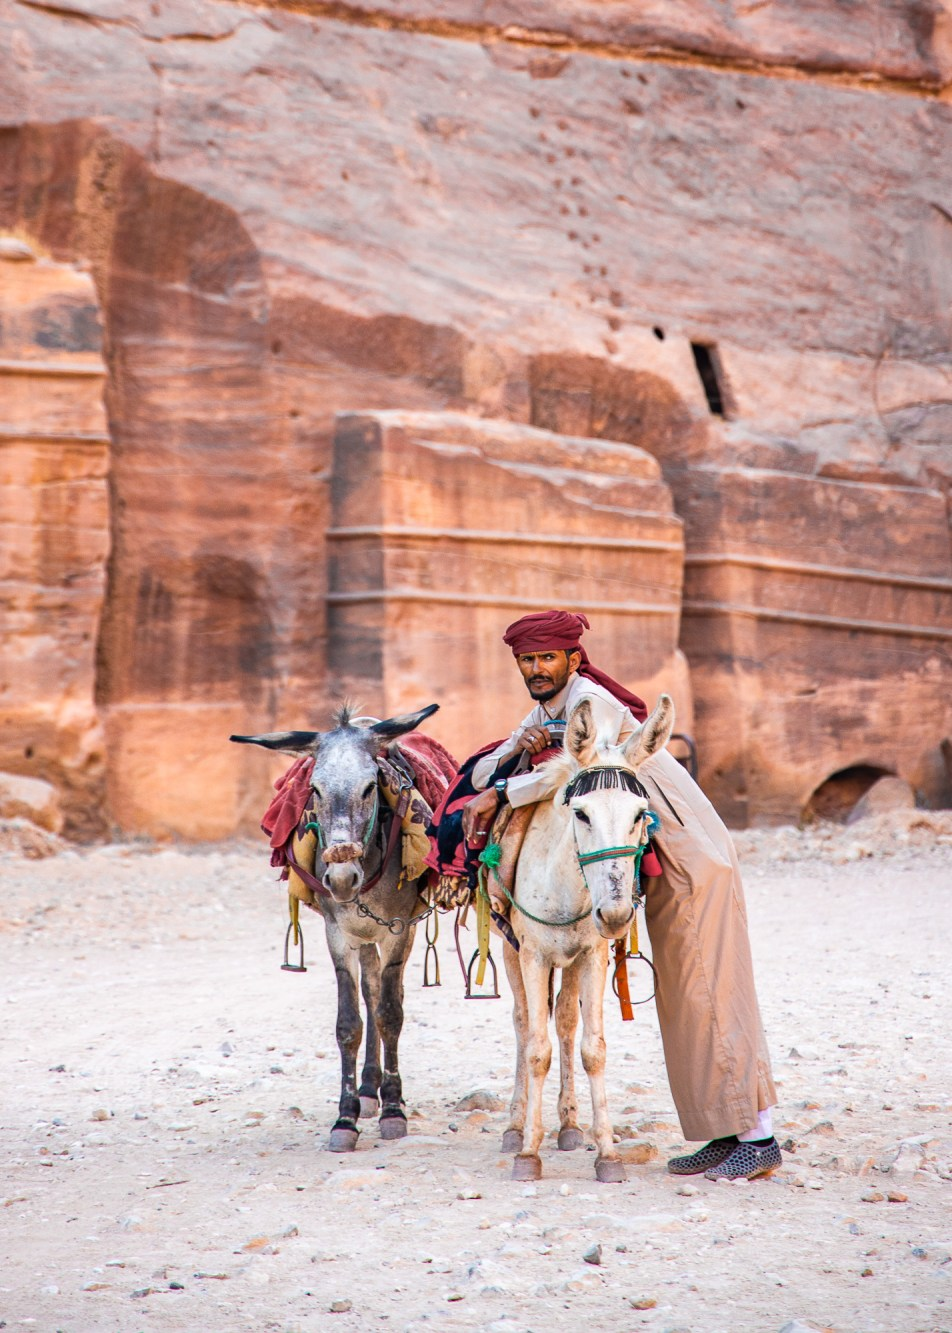 Bedouin and his donkey in Petra, Jordan